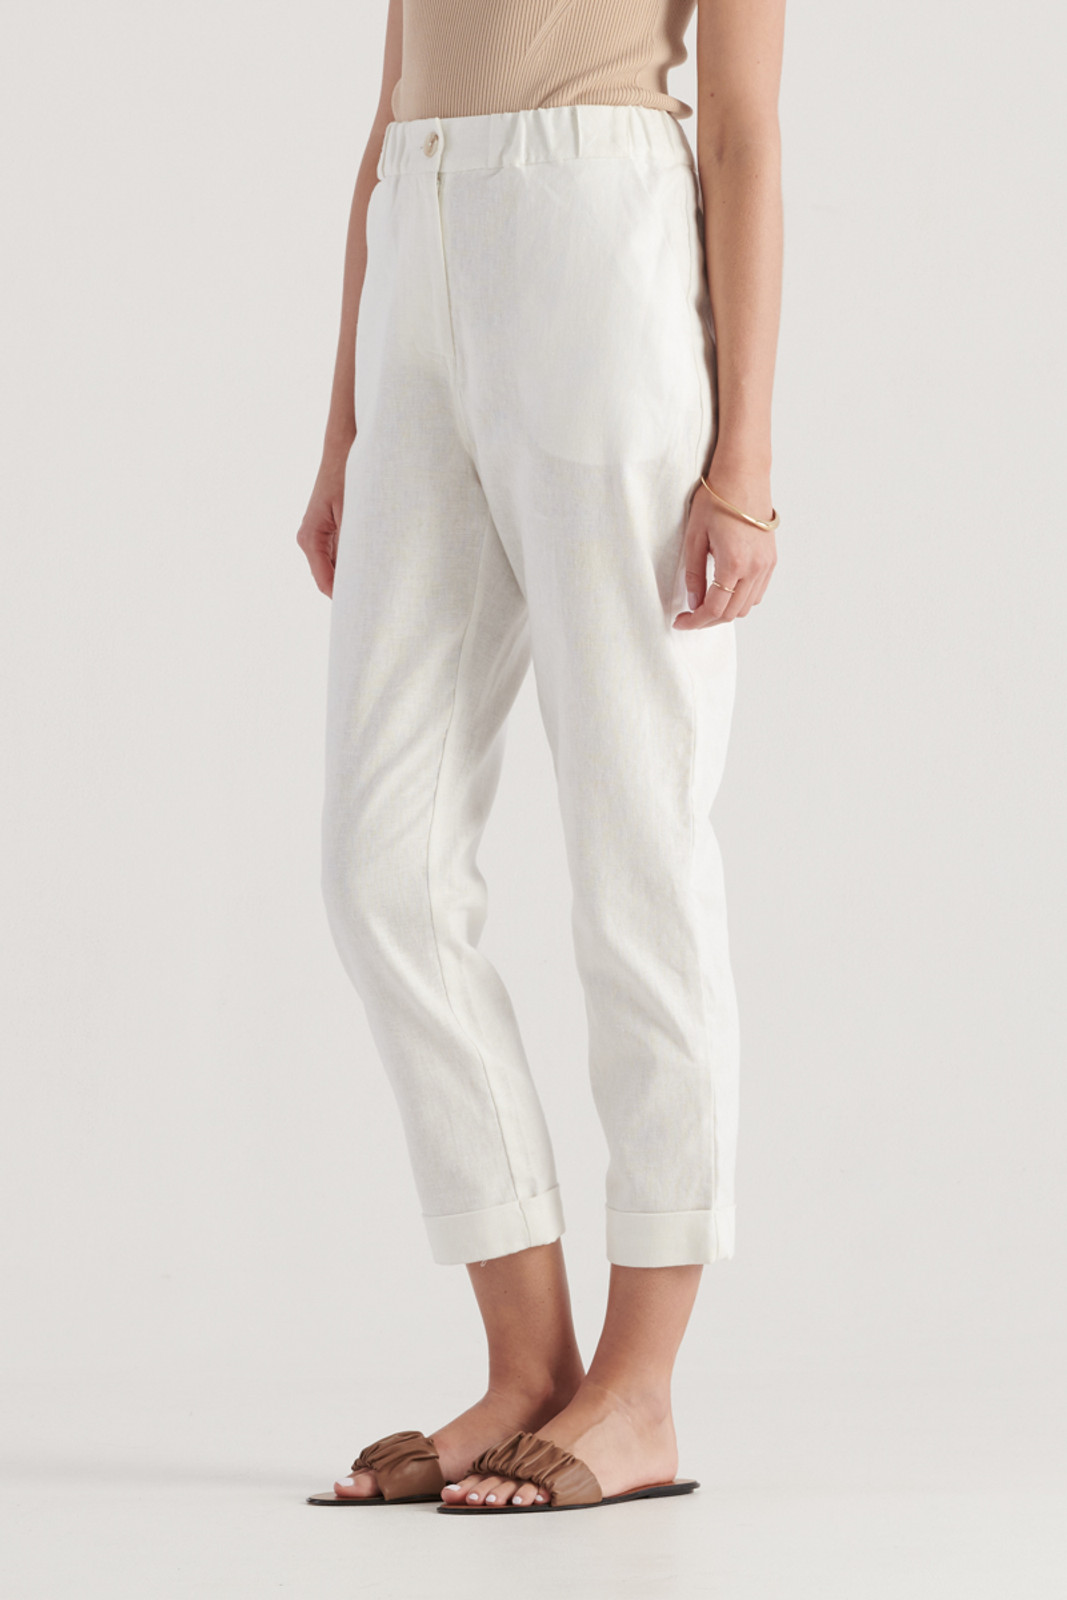 Elka Collective Womens White Margot Pant 0